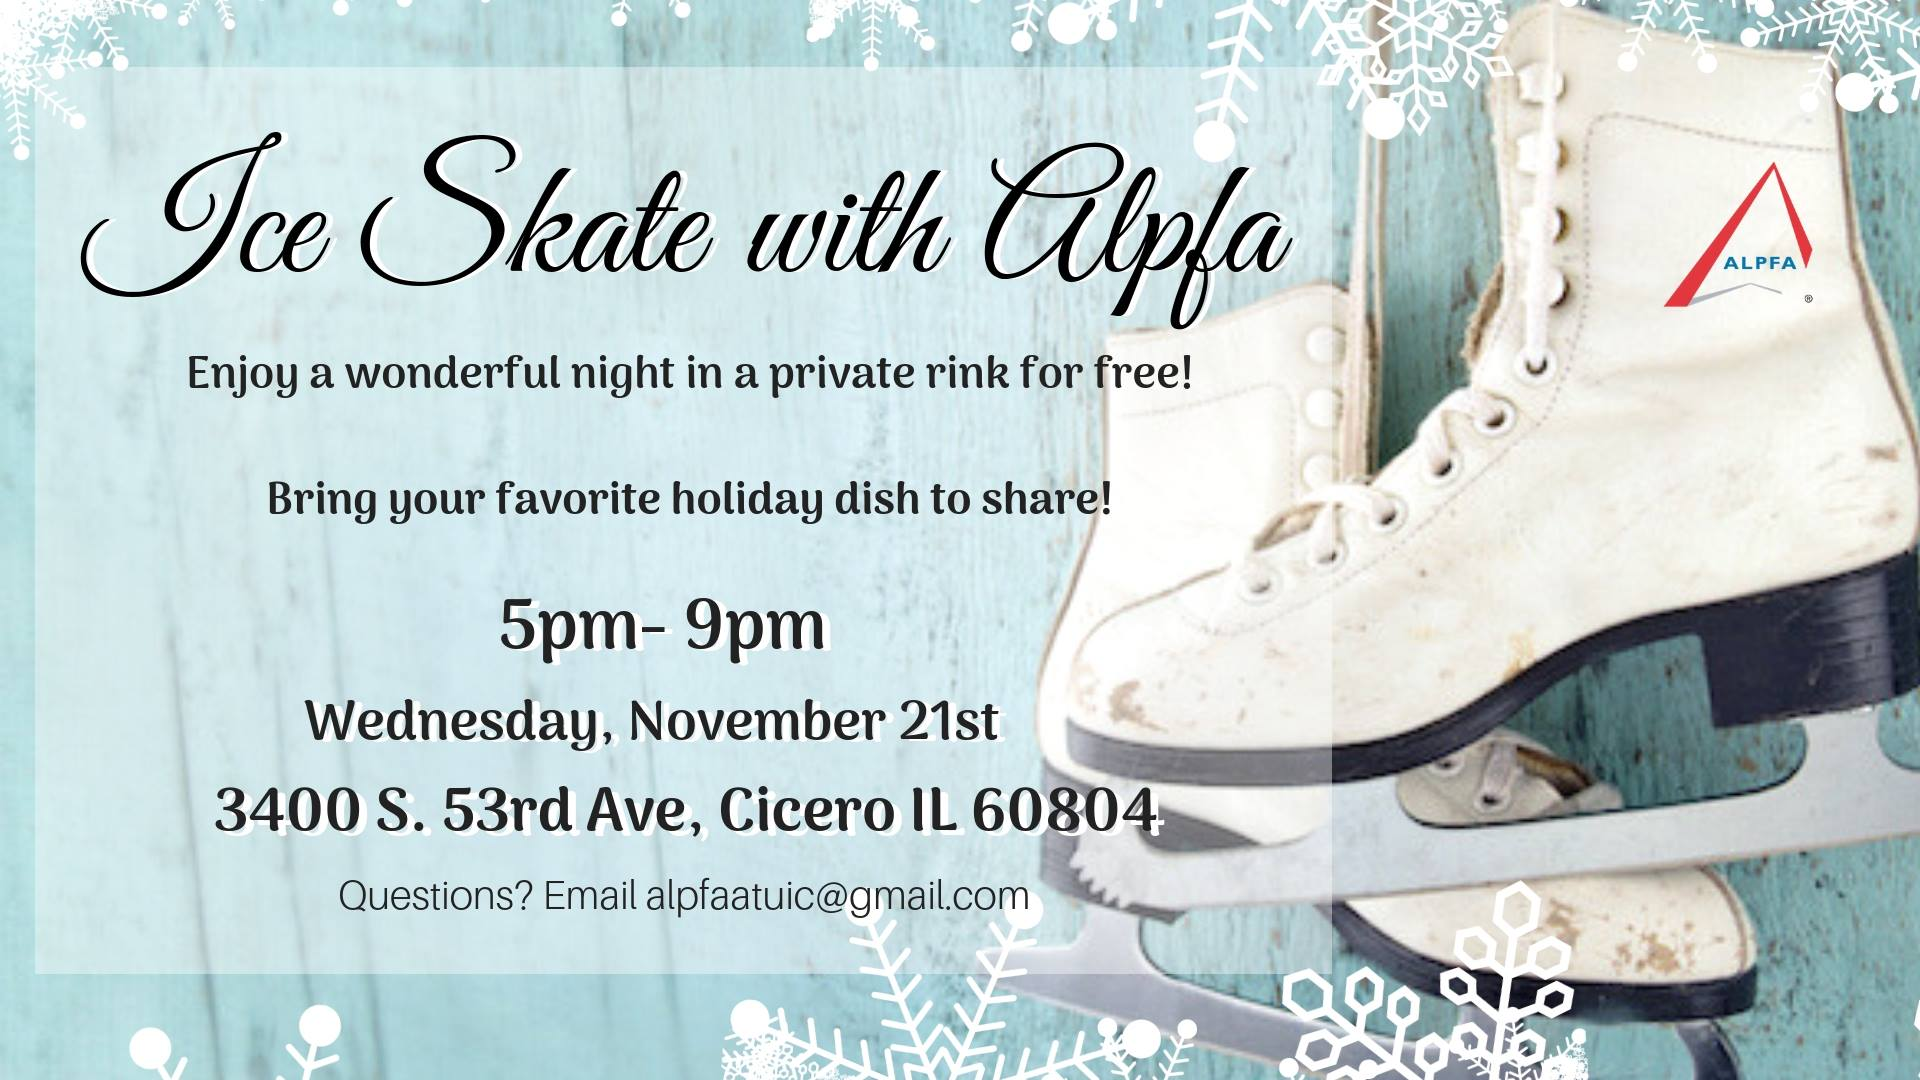 ice skate and potluck.jpg